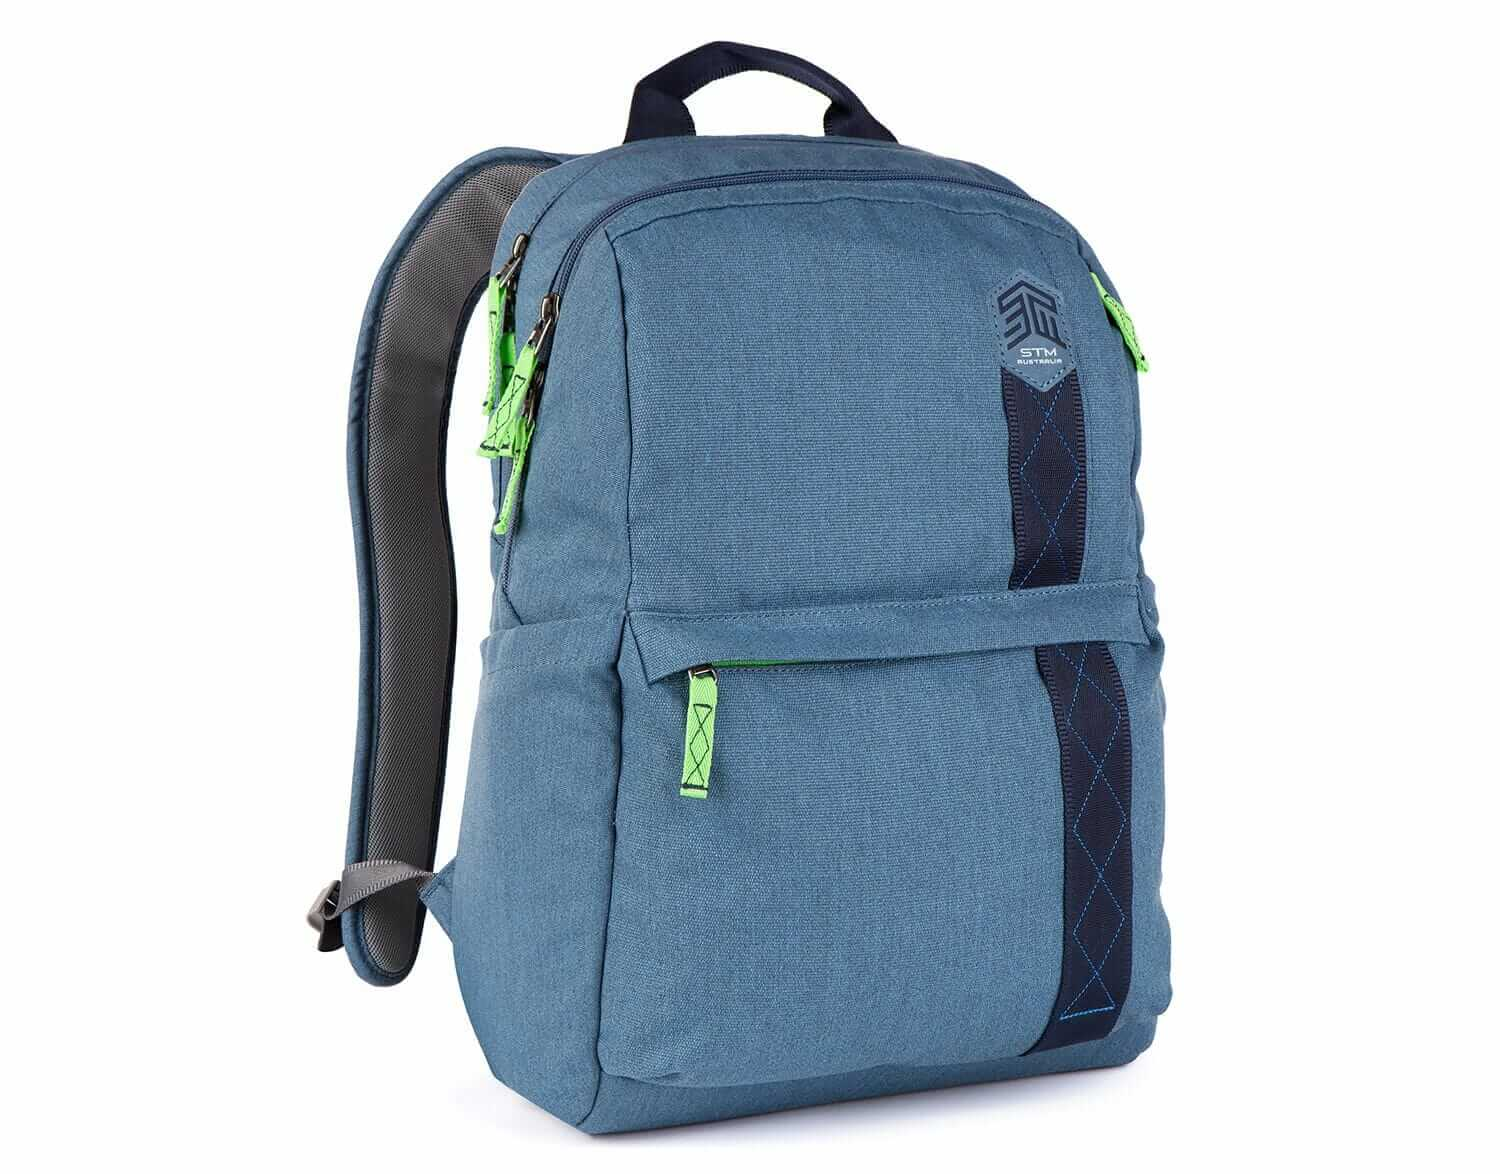 16 Laptop Backpack